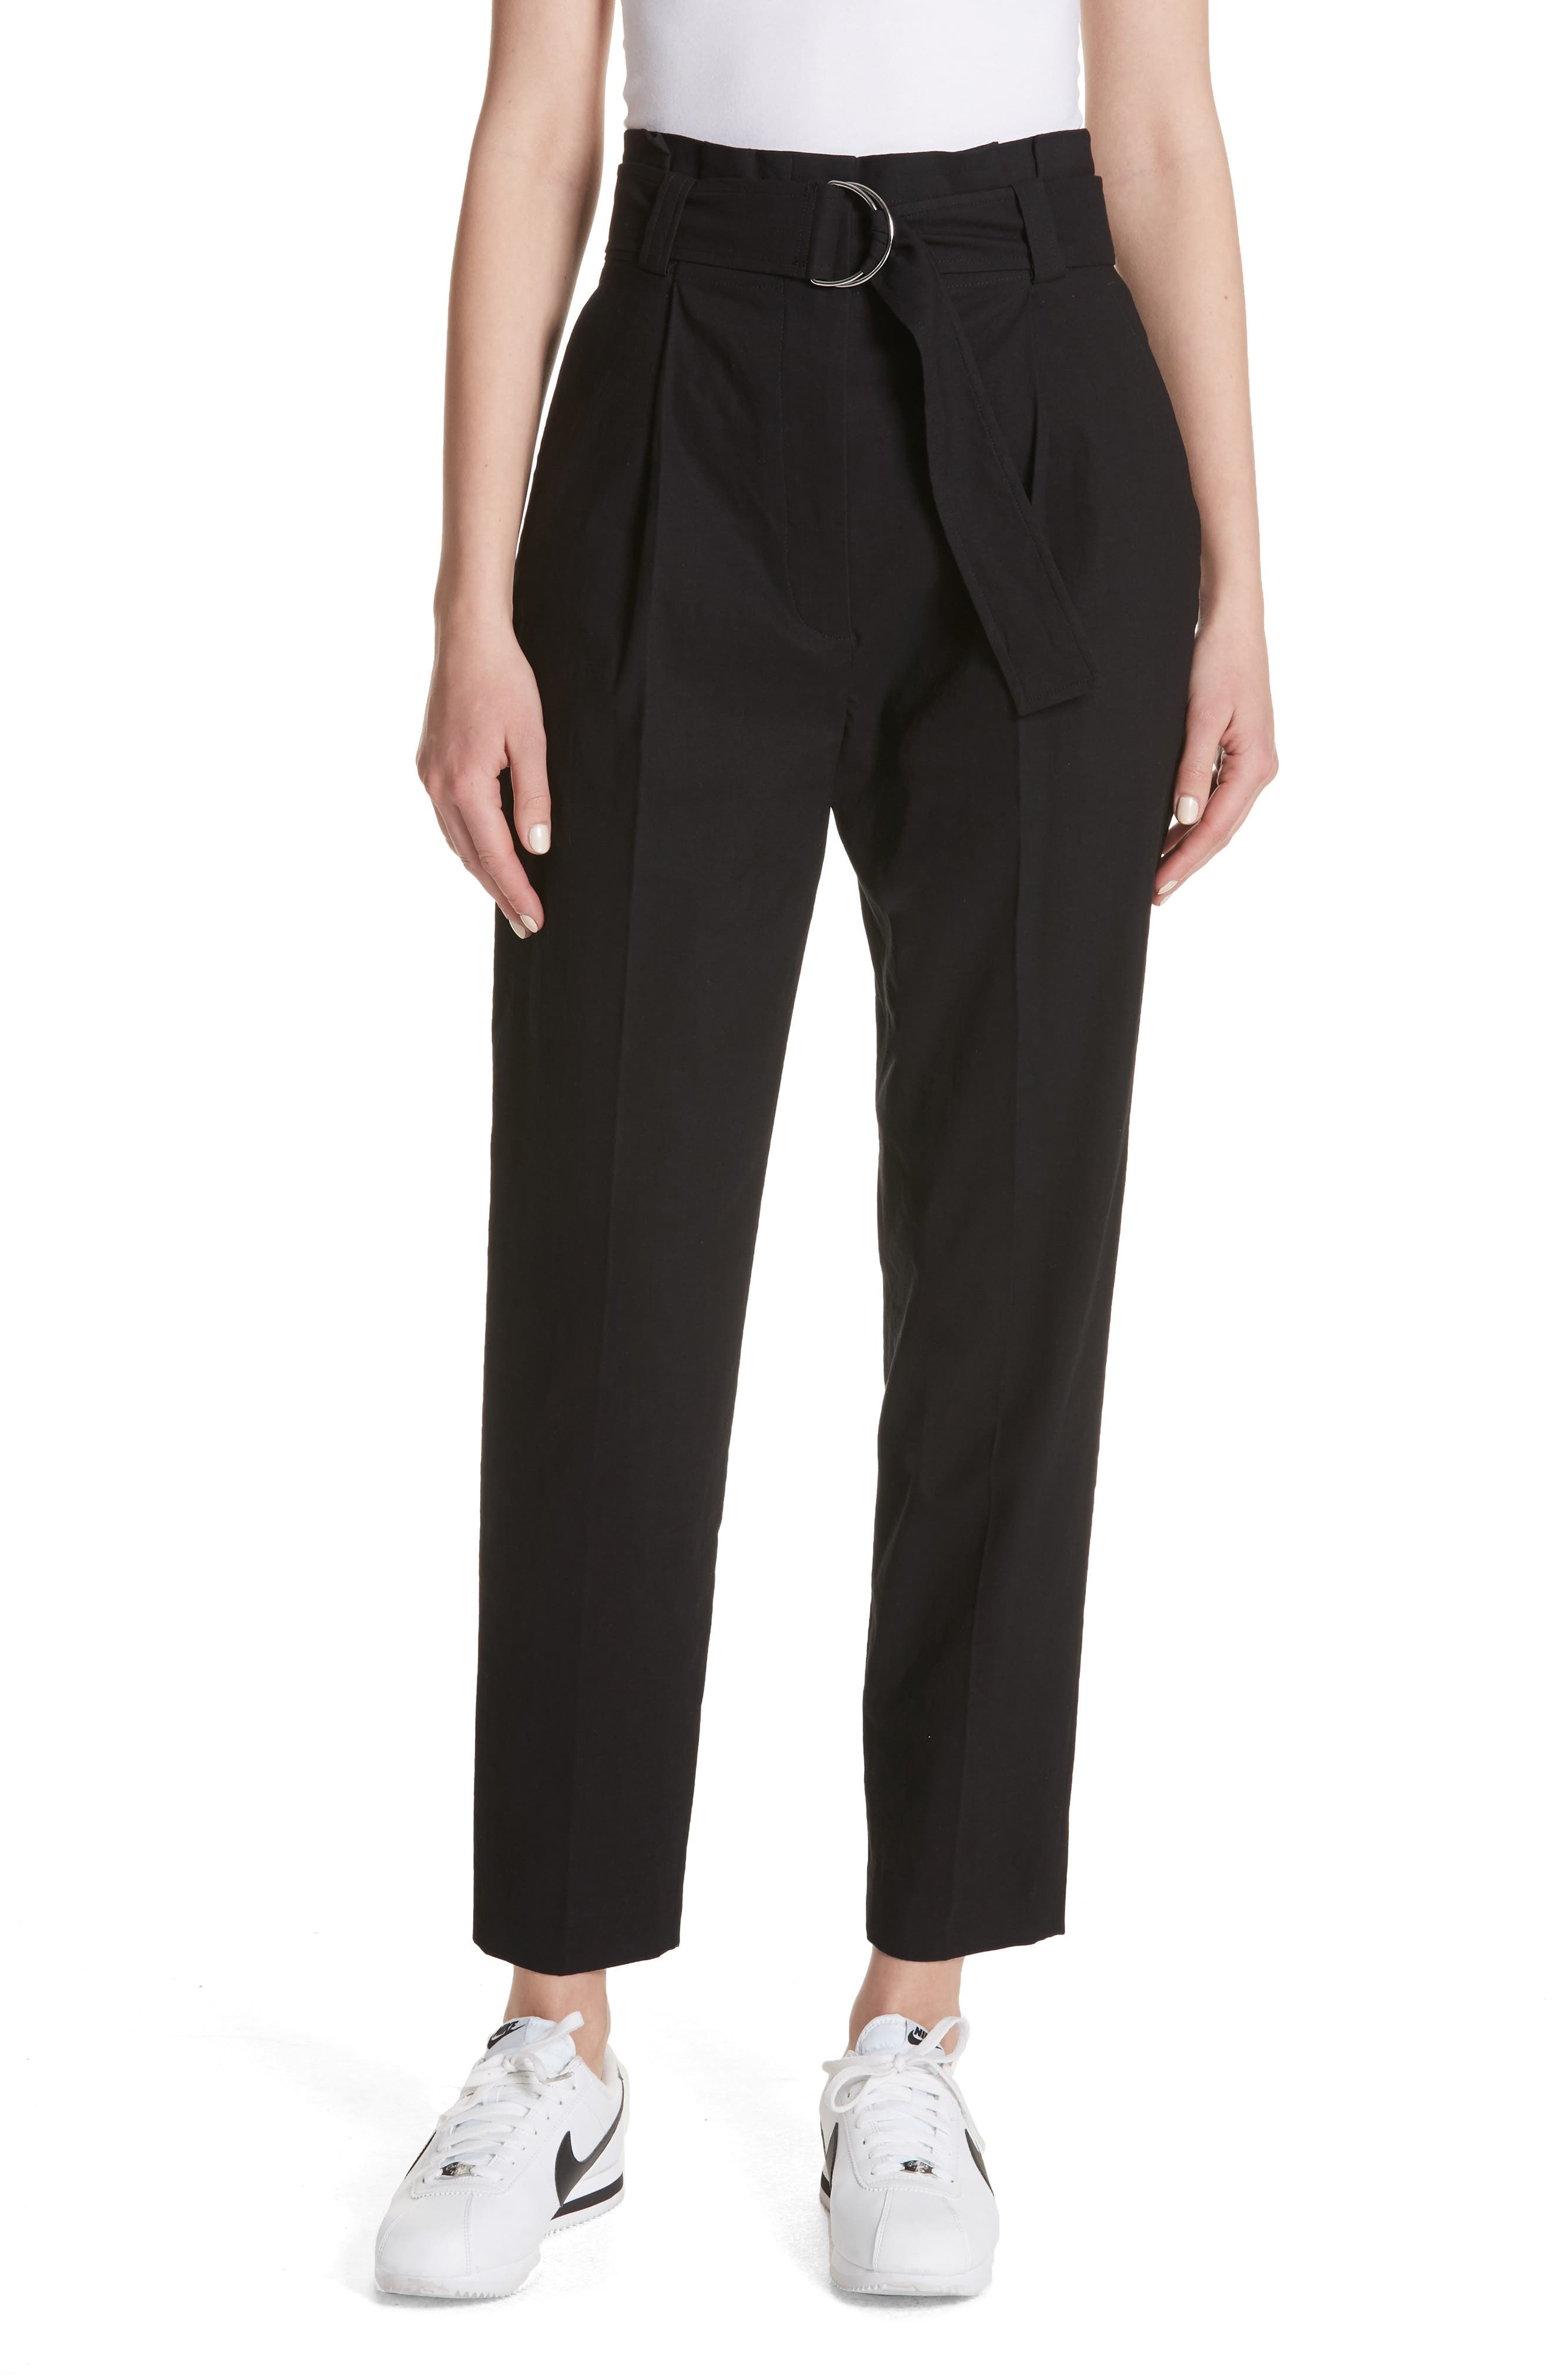 Diego High Waist Pants,                         Main,                         color, Black